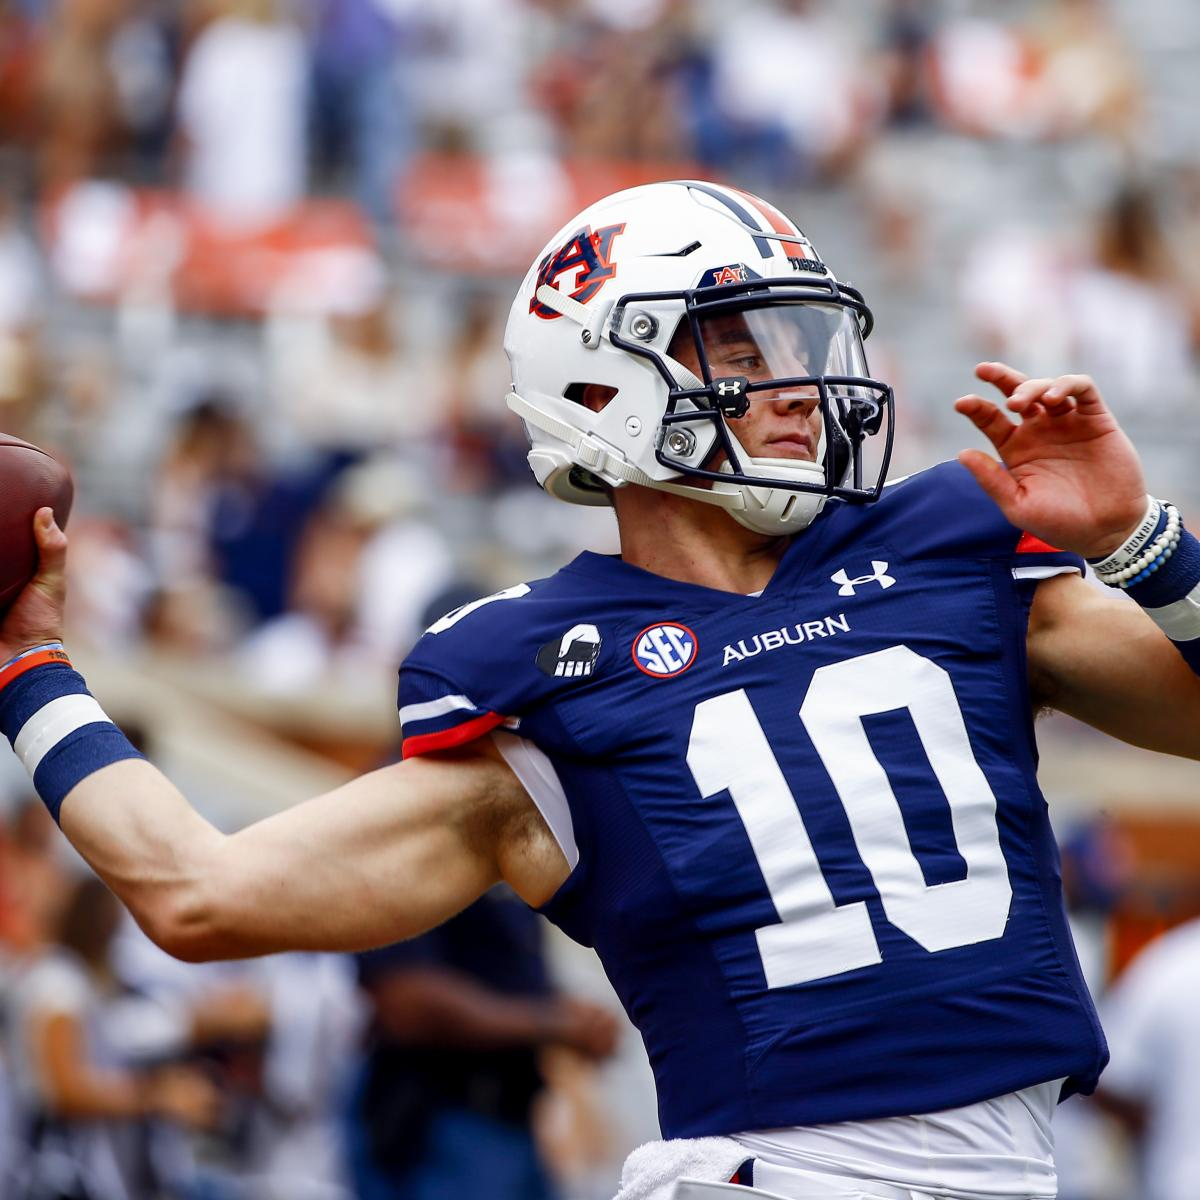 College Football Rankings 2020: Latest Standings and Predictions for Week 5